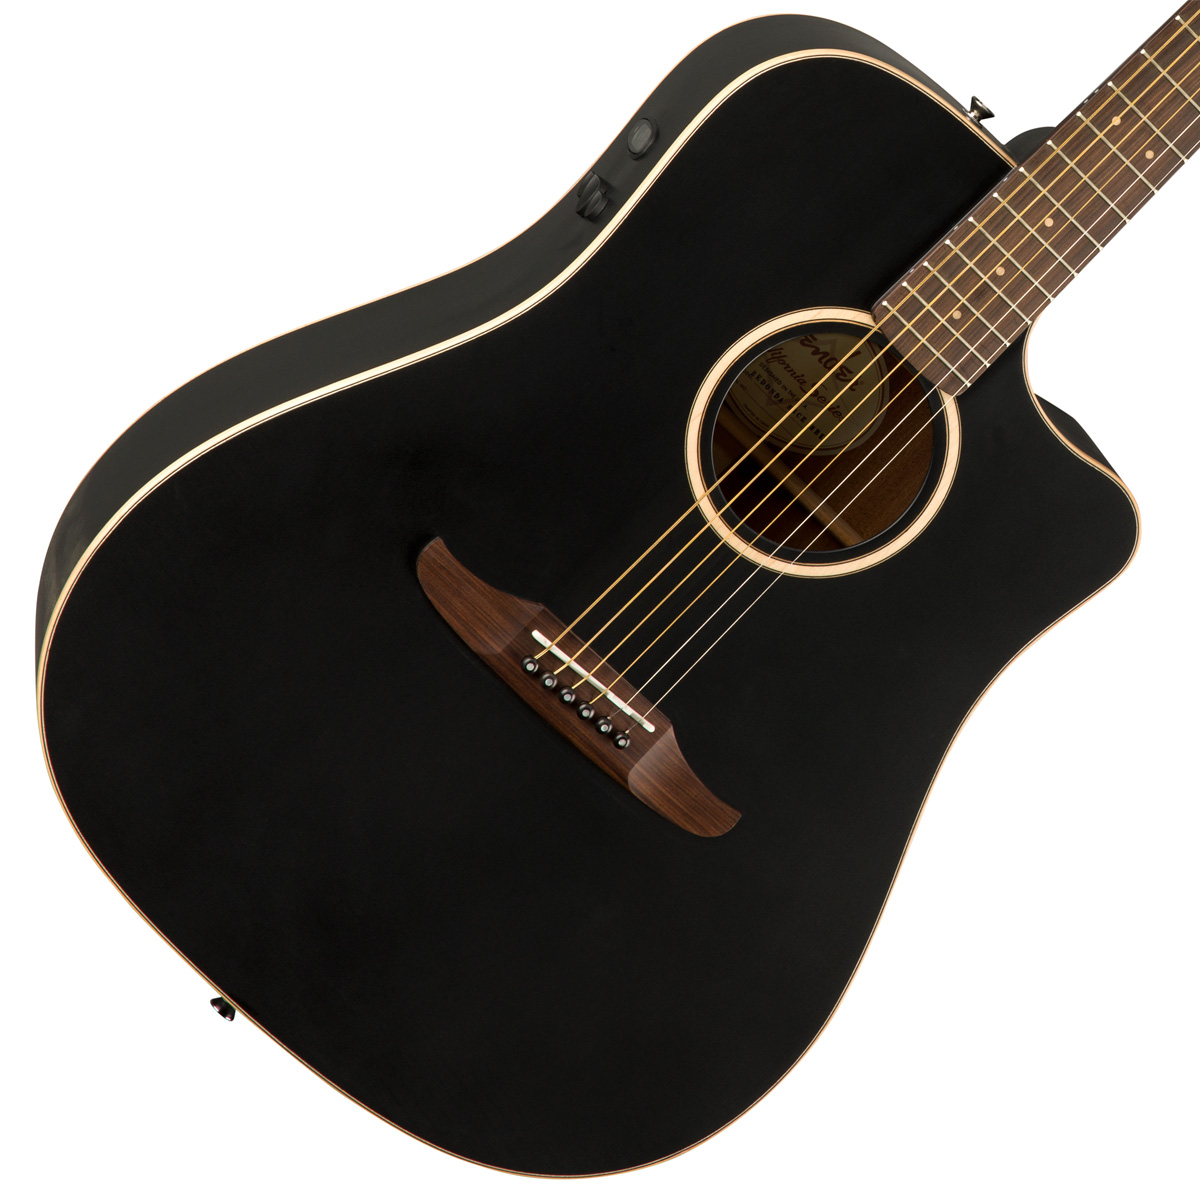 FENDER / REDONDO SPECIAL Matte Black (MBK) 【CALIFORNIA SERIES】フェンダー アコースティックギター